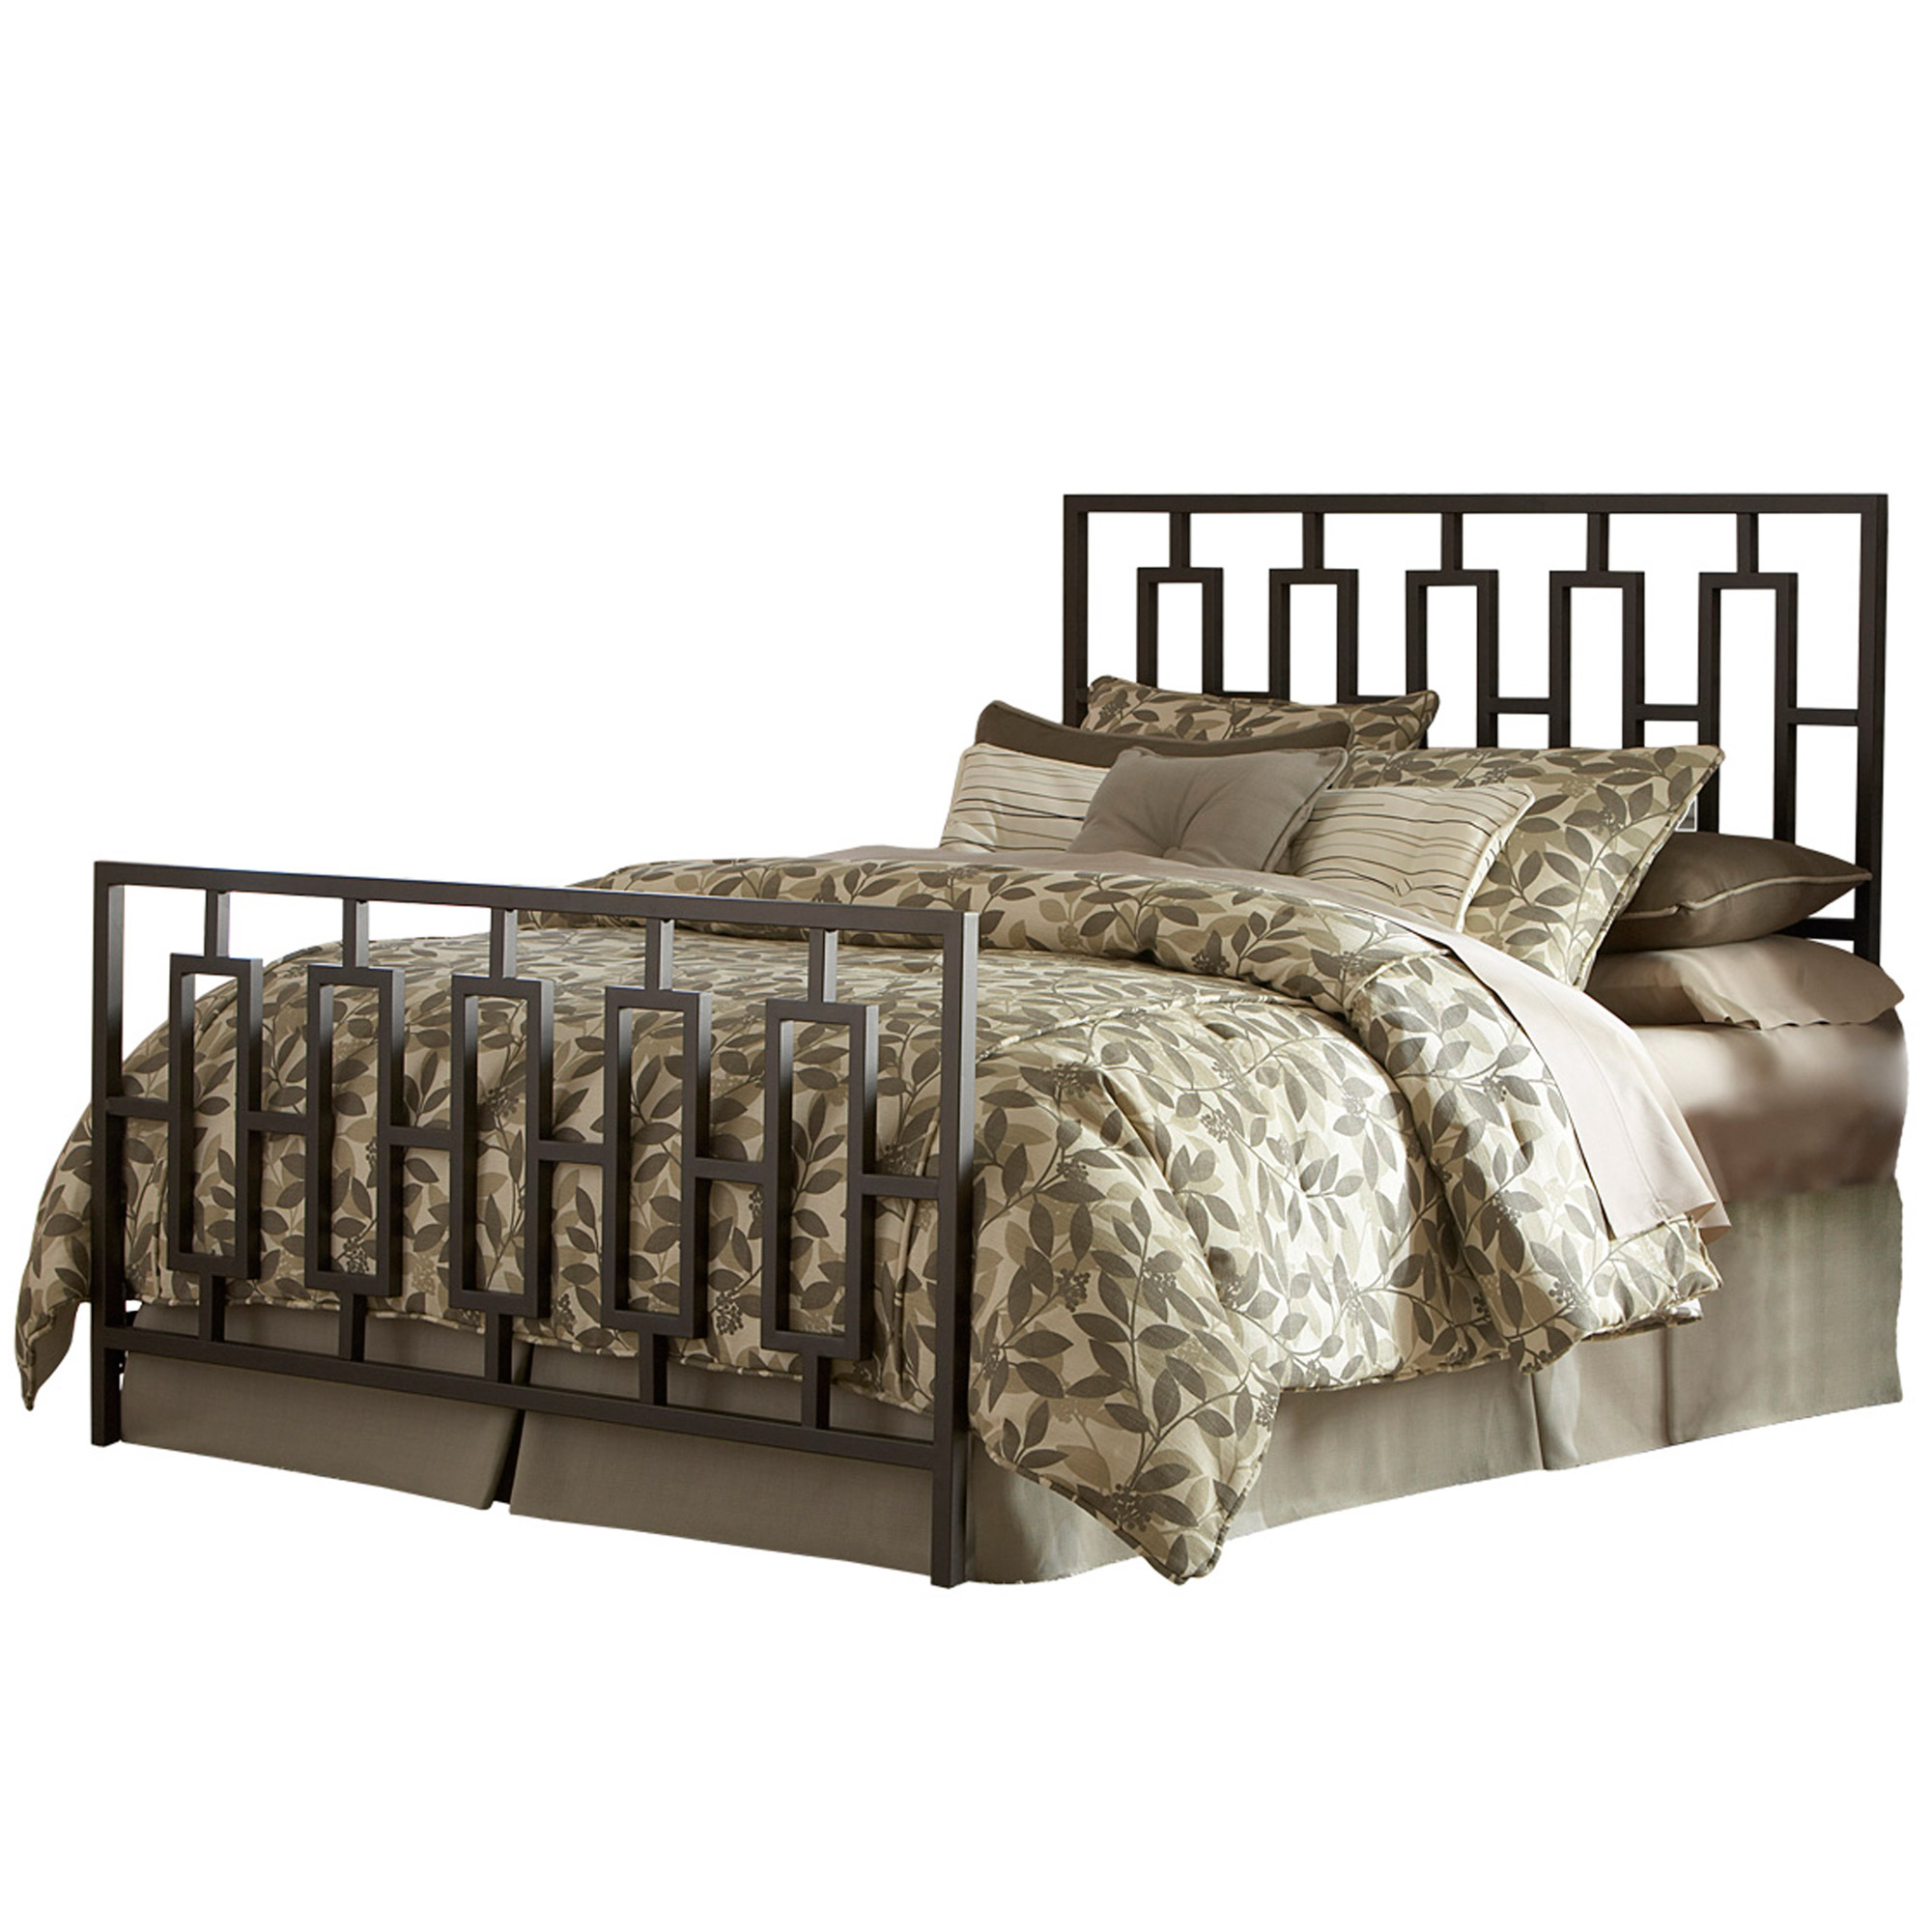 wrought iron beds  style strength  comfort - miami iron bed sleek contemporary design coffee finish